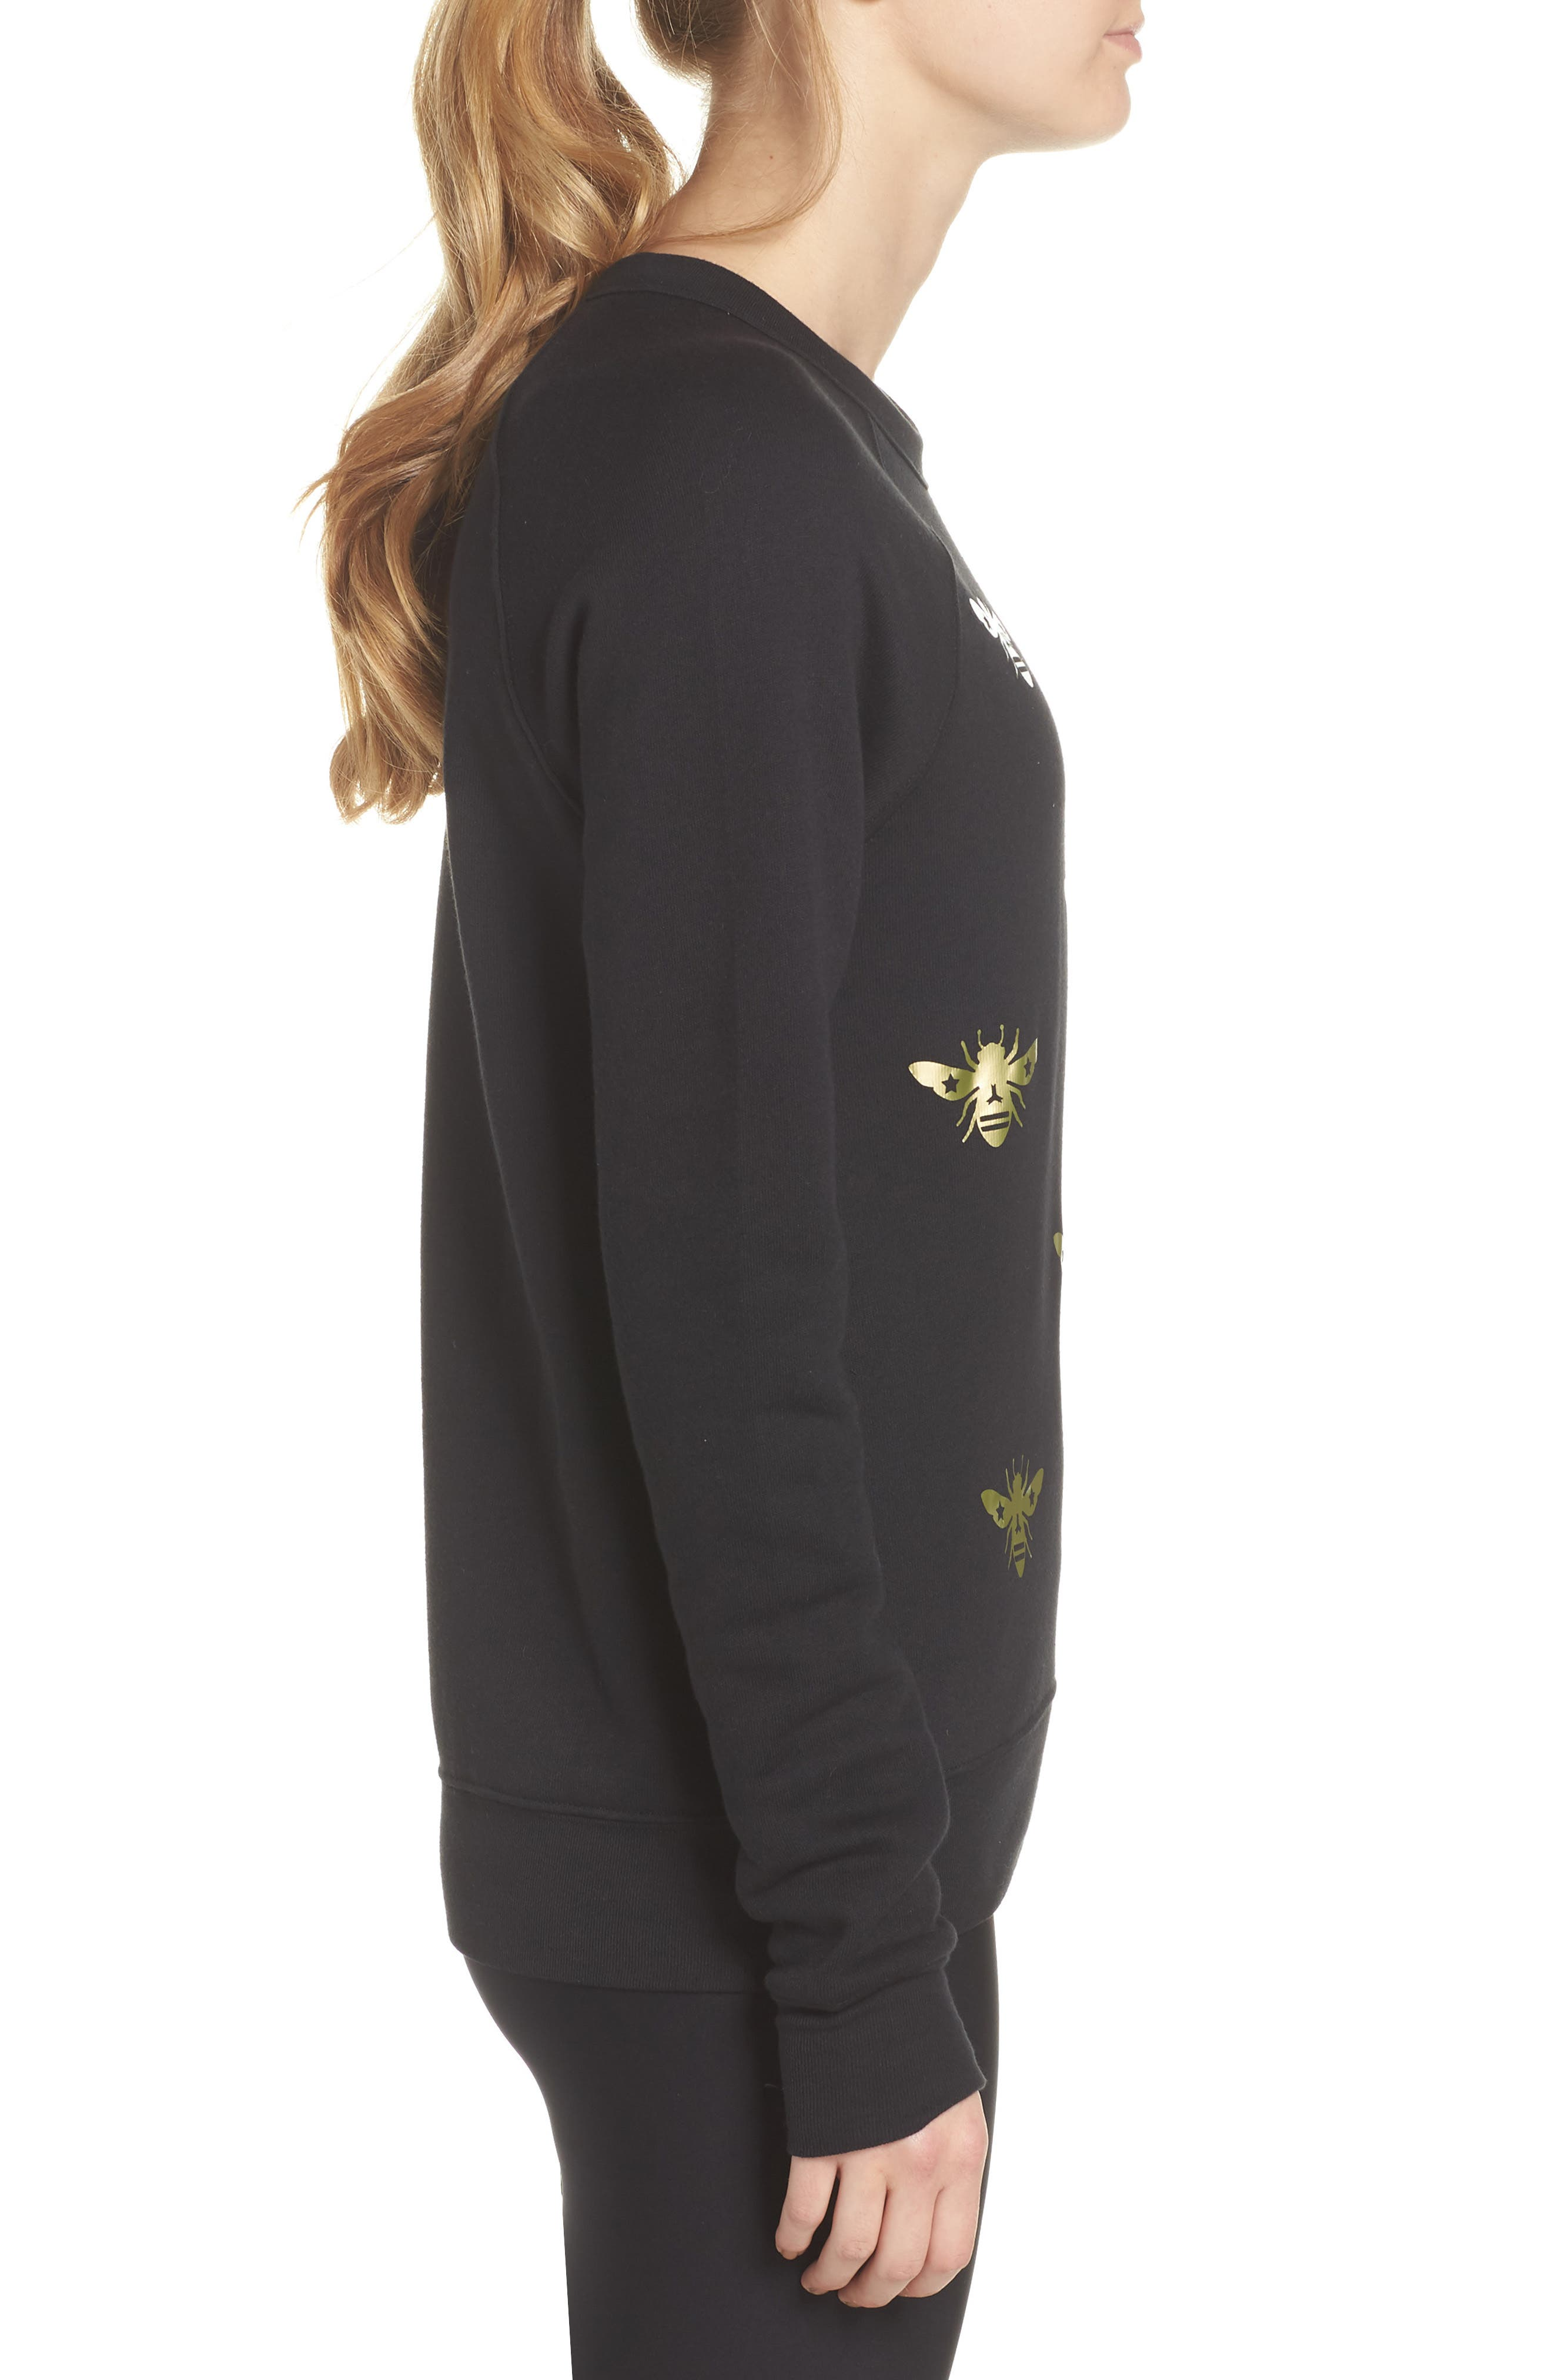 Bee Sweatshirt,                             Alternate thumbnail 3, color,                             Nero/ Gold